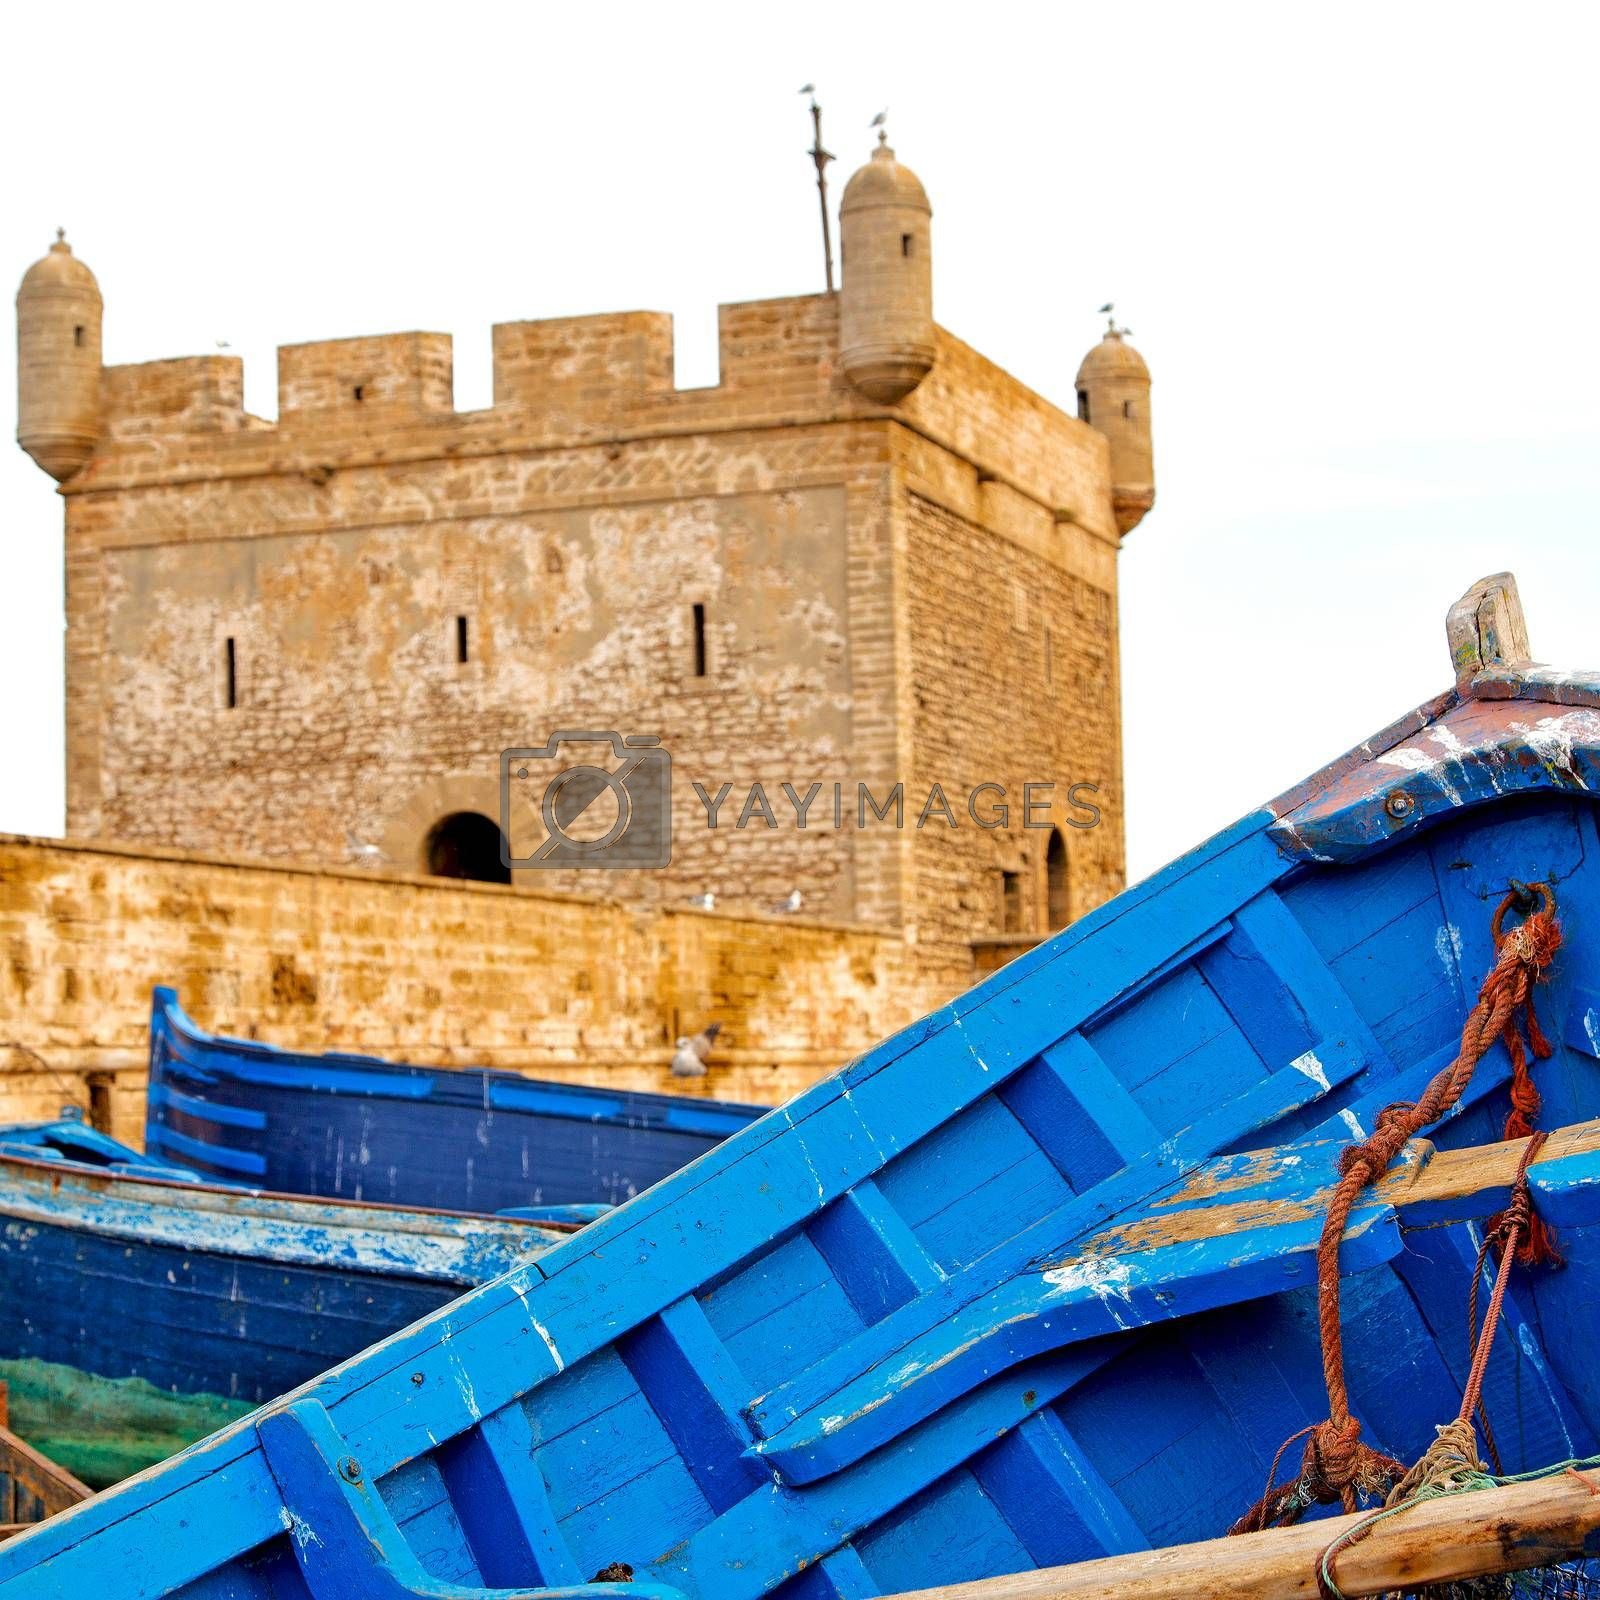 boat and sea in africa morocco old castle brown brick  sky by lkpro